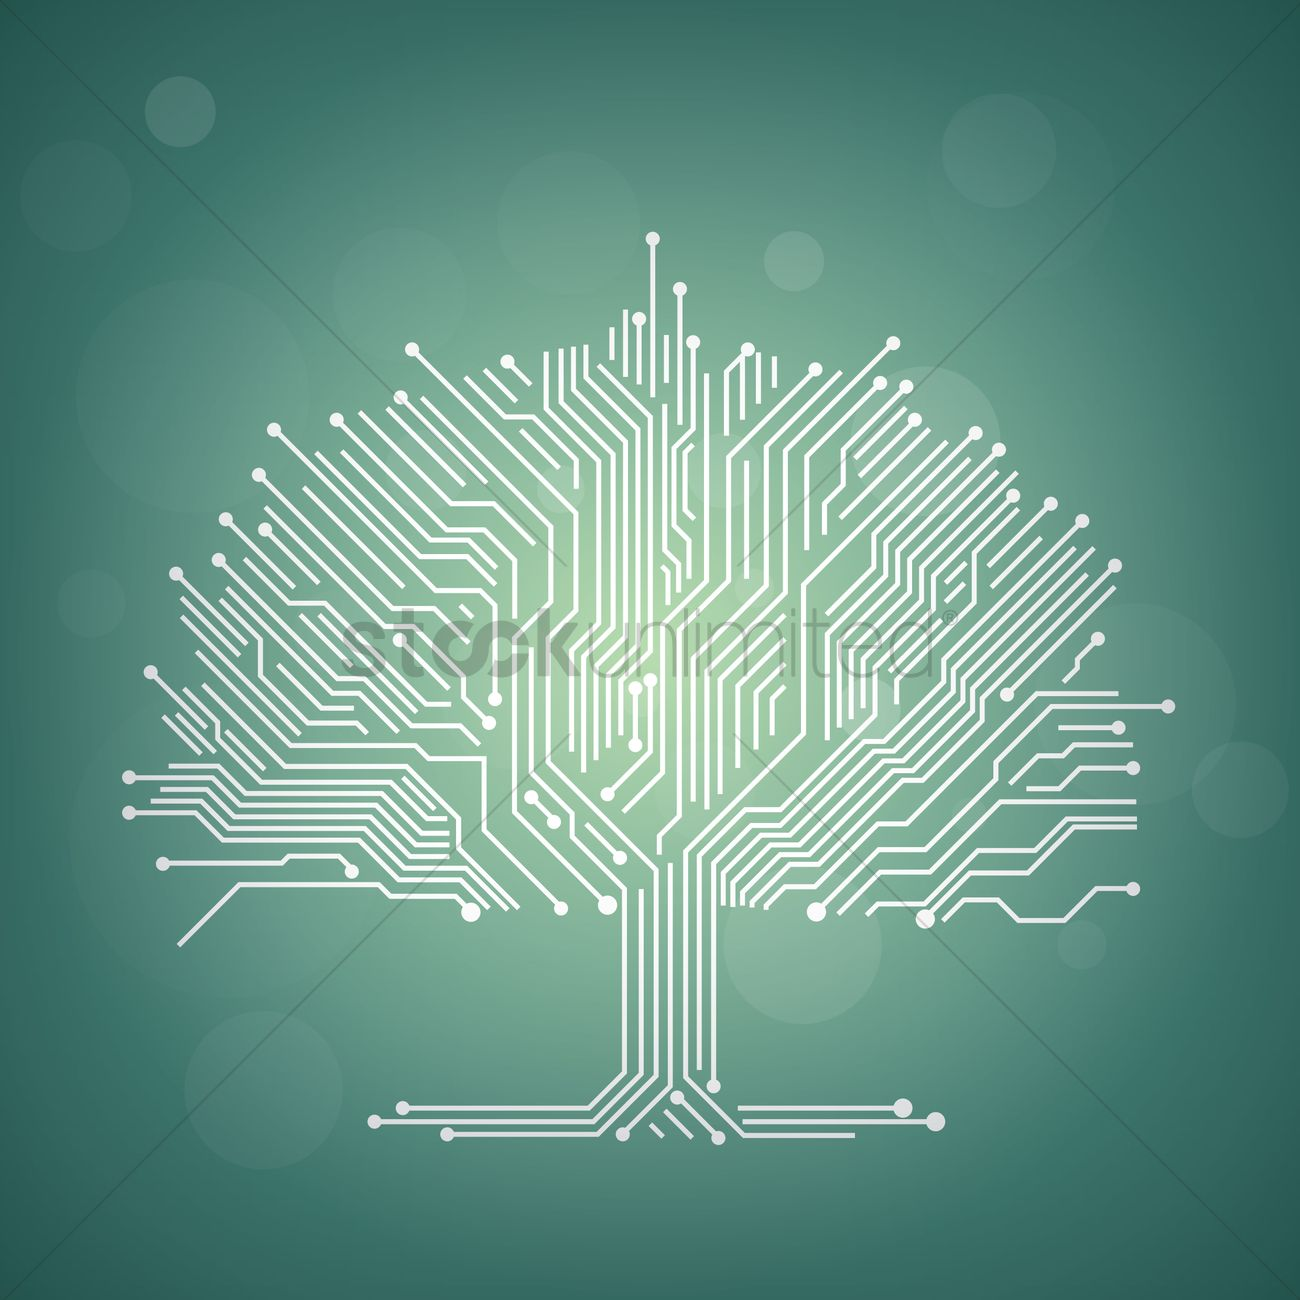 Circuit Board Tree Design Vector Image 1948231 Stockunlimited Royalty Free Clip Art Simple Drawing Of A Graphic